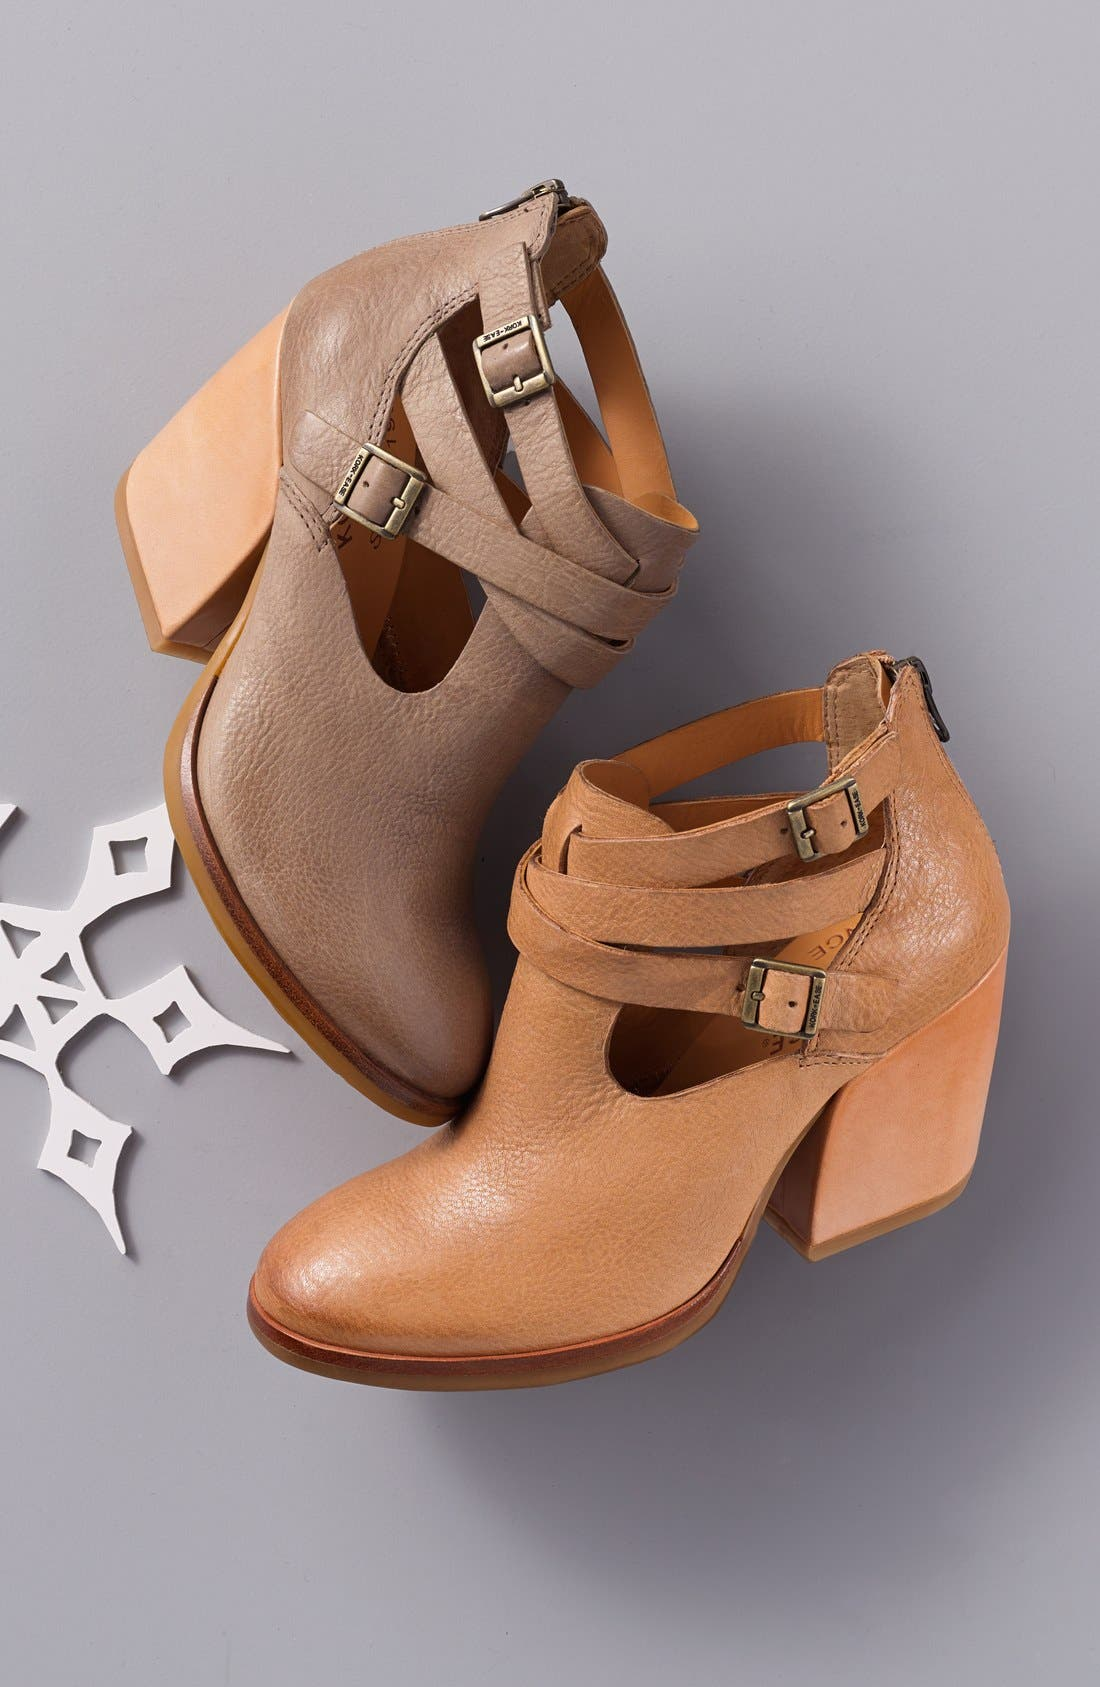 'Stina' Leather Bootie,                             Alternate thumbnail 5, color,                             001